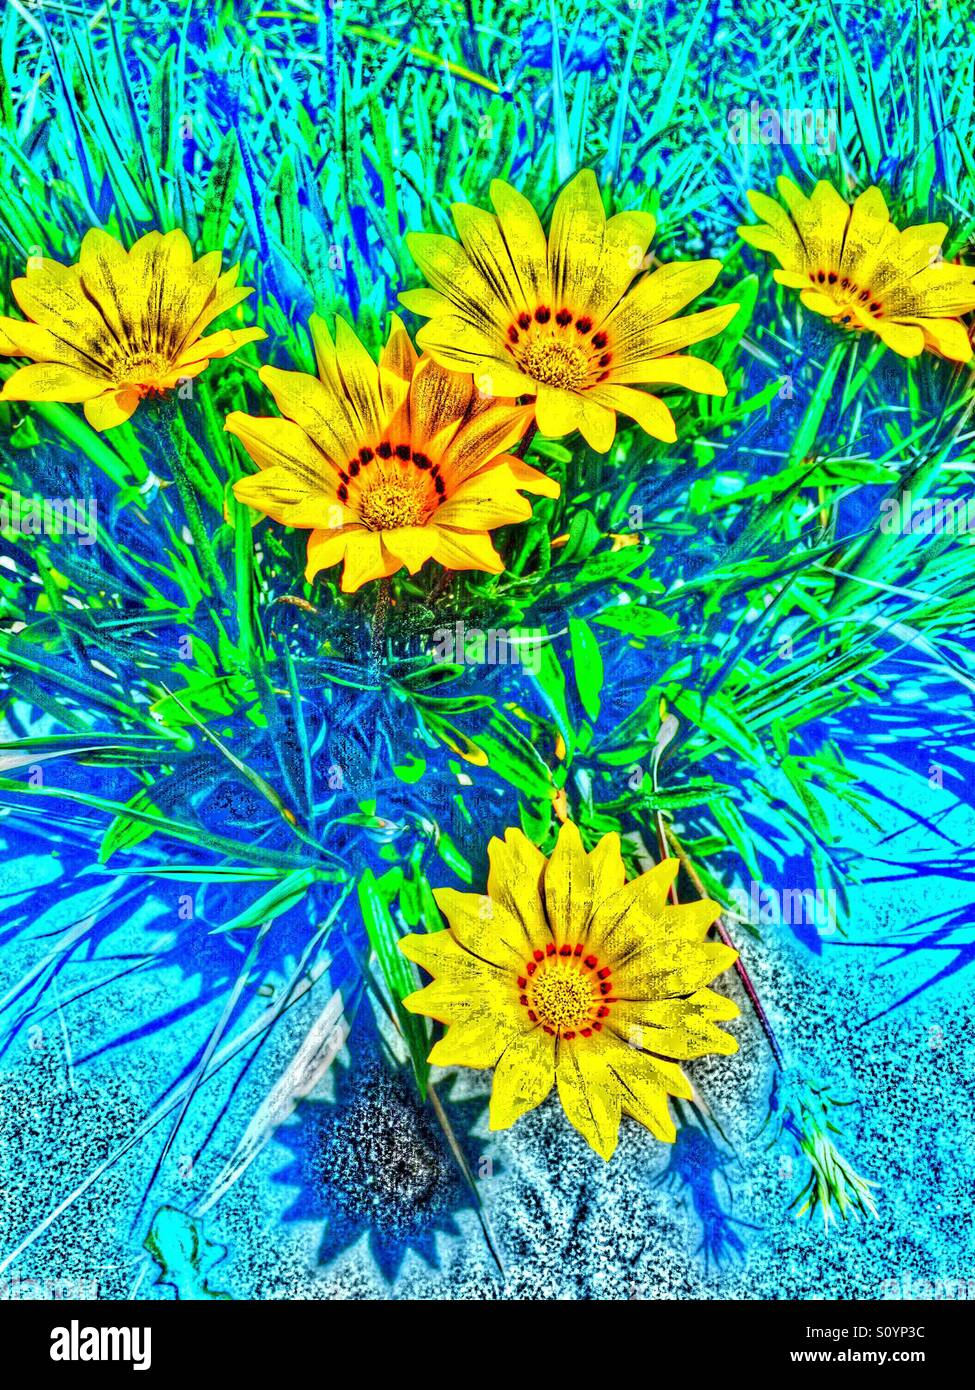 Painterly image of yellow flowers - Stock Image